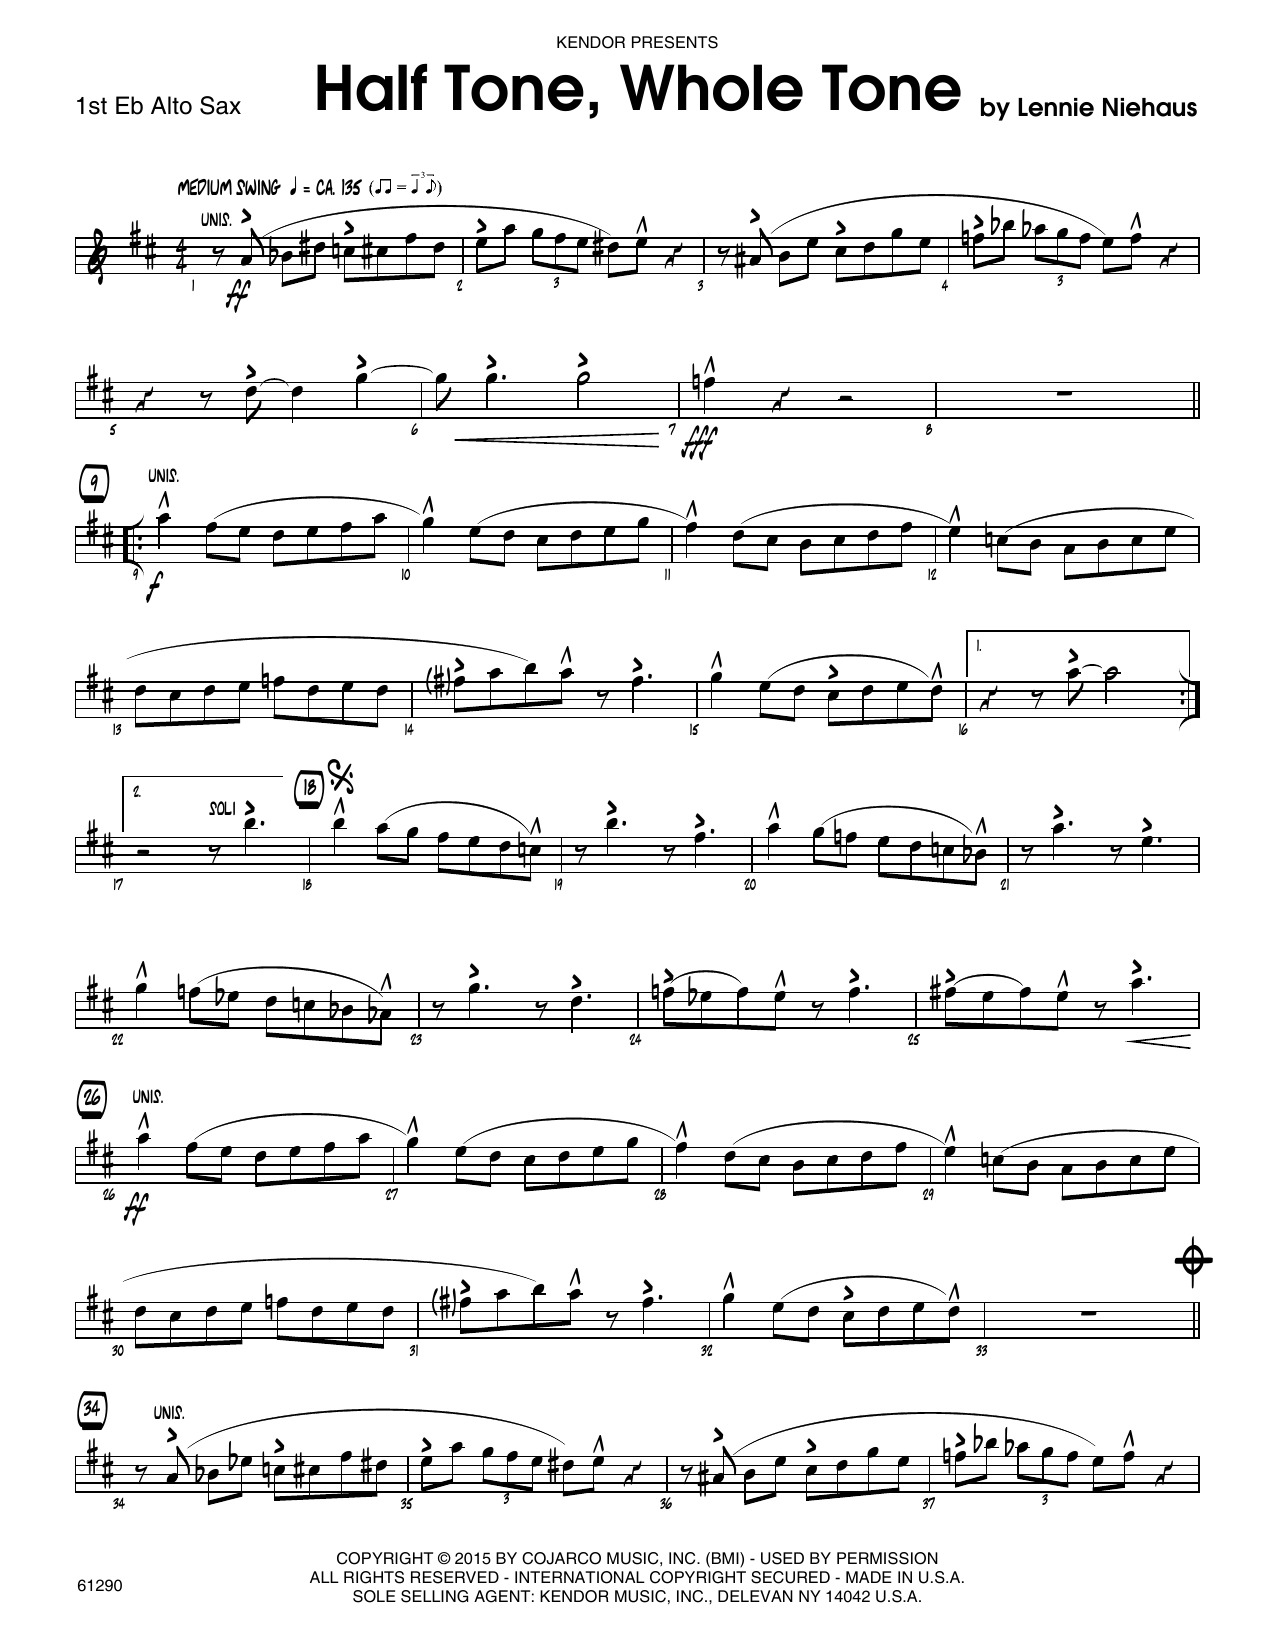 Half Tone, Whole Tone - 1st Eb Alto Saxophone Sheet Music